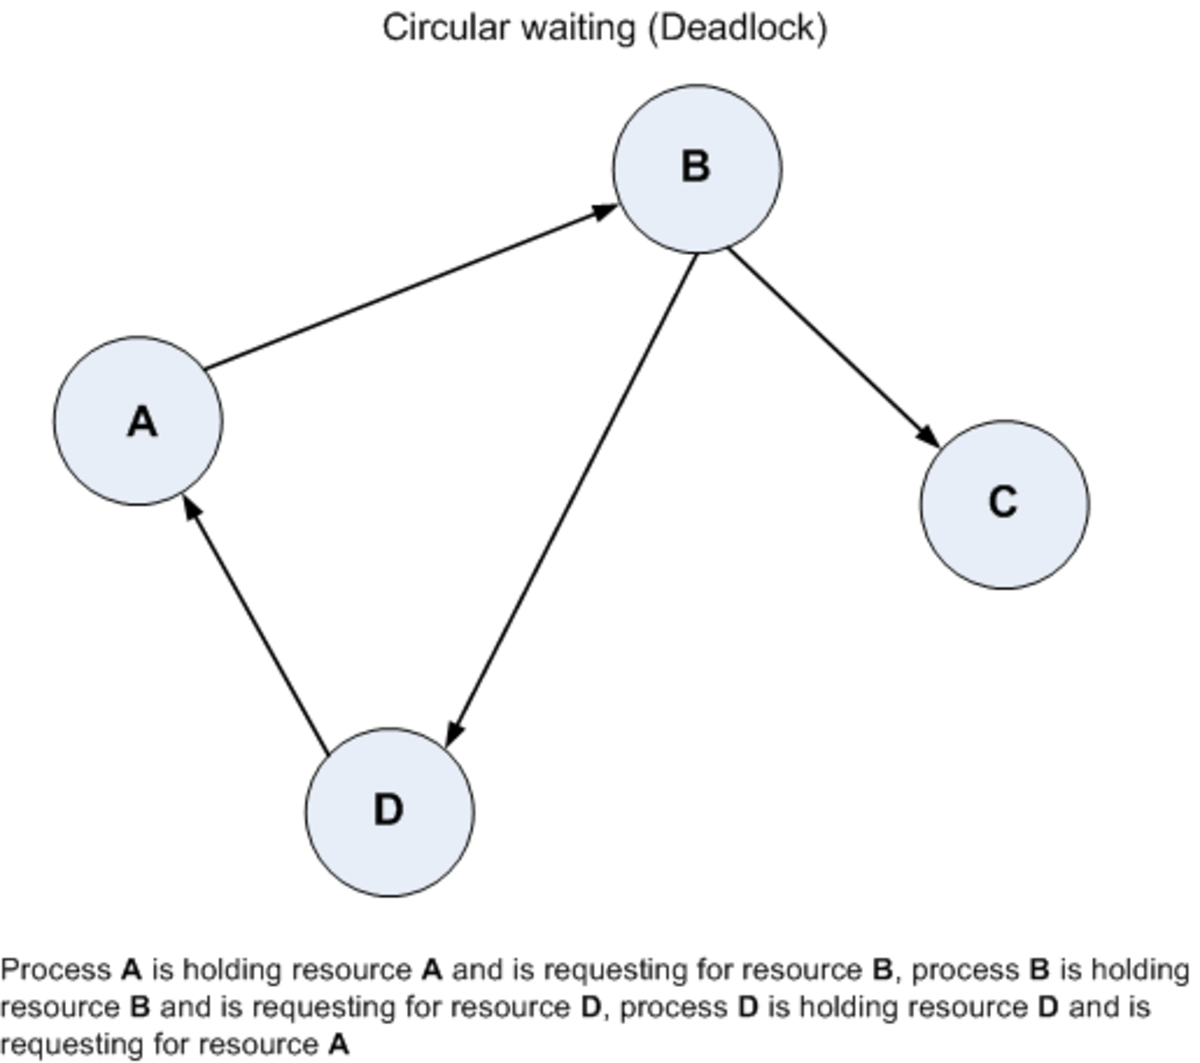 How deadlock occur and what causes deadlock